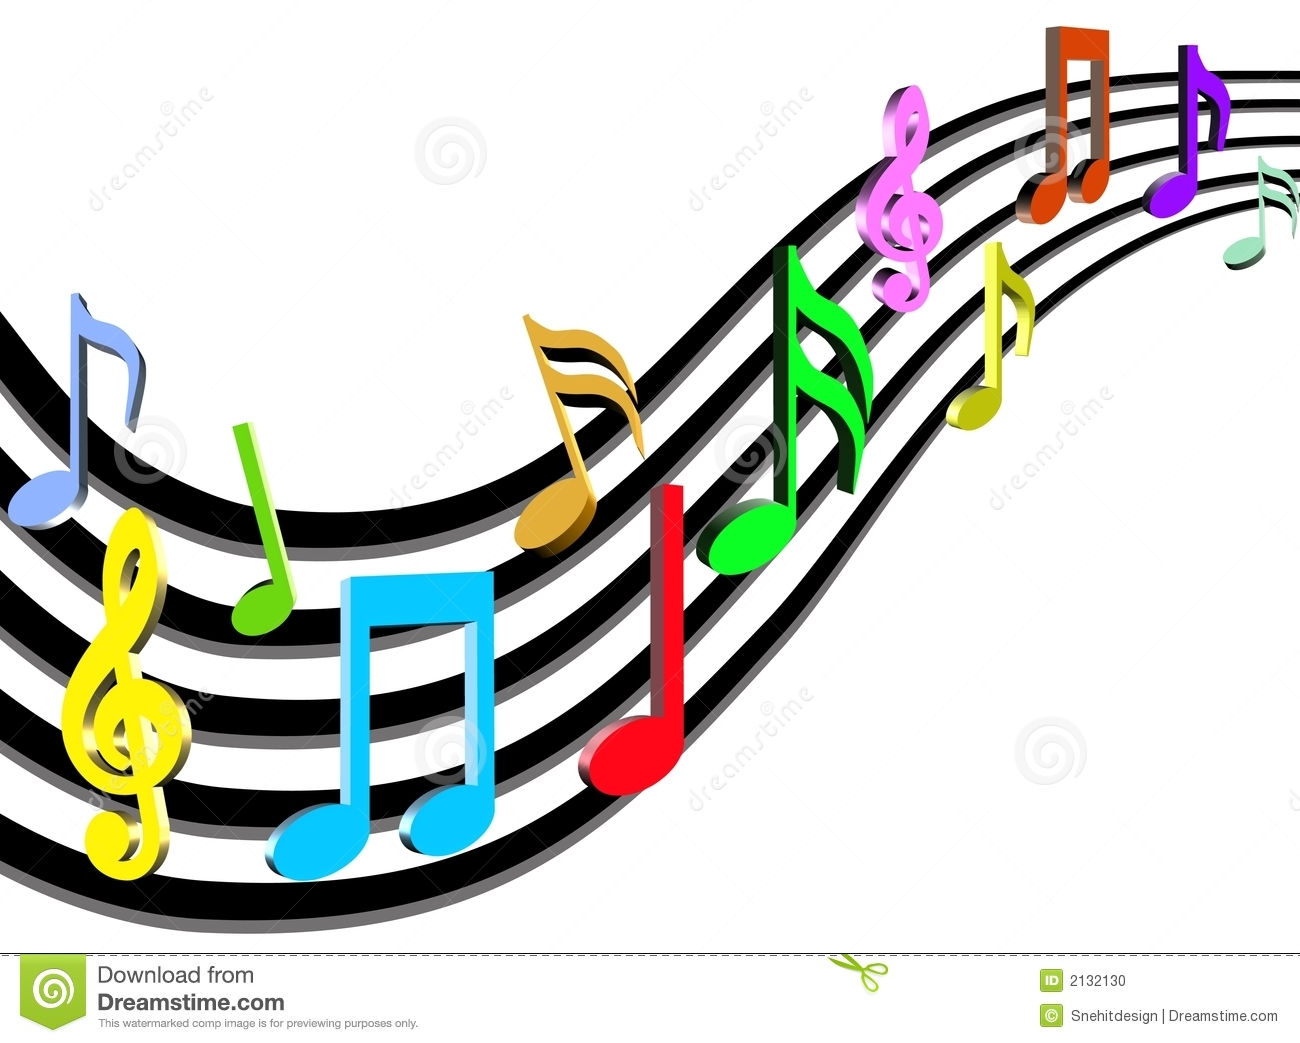 3d Colorful Music Notes Wallpaper: Colorful Musical Notes Background